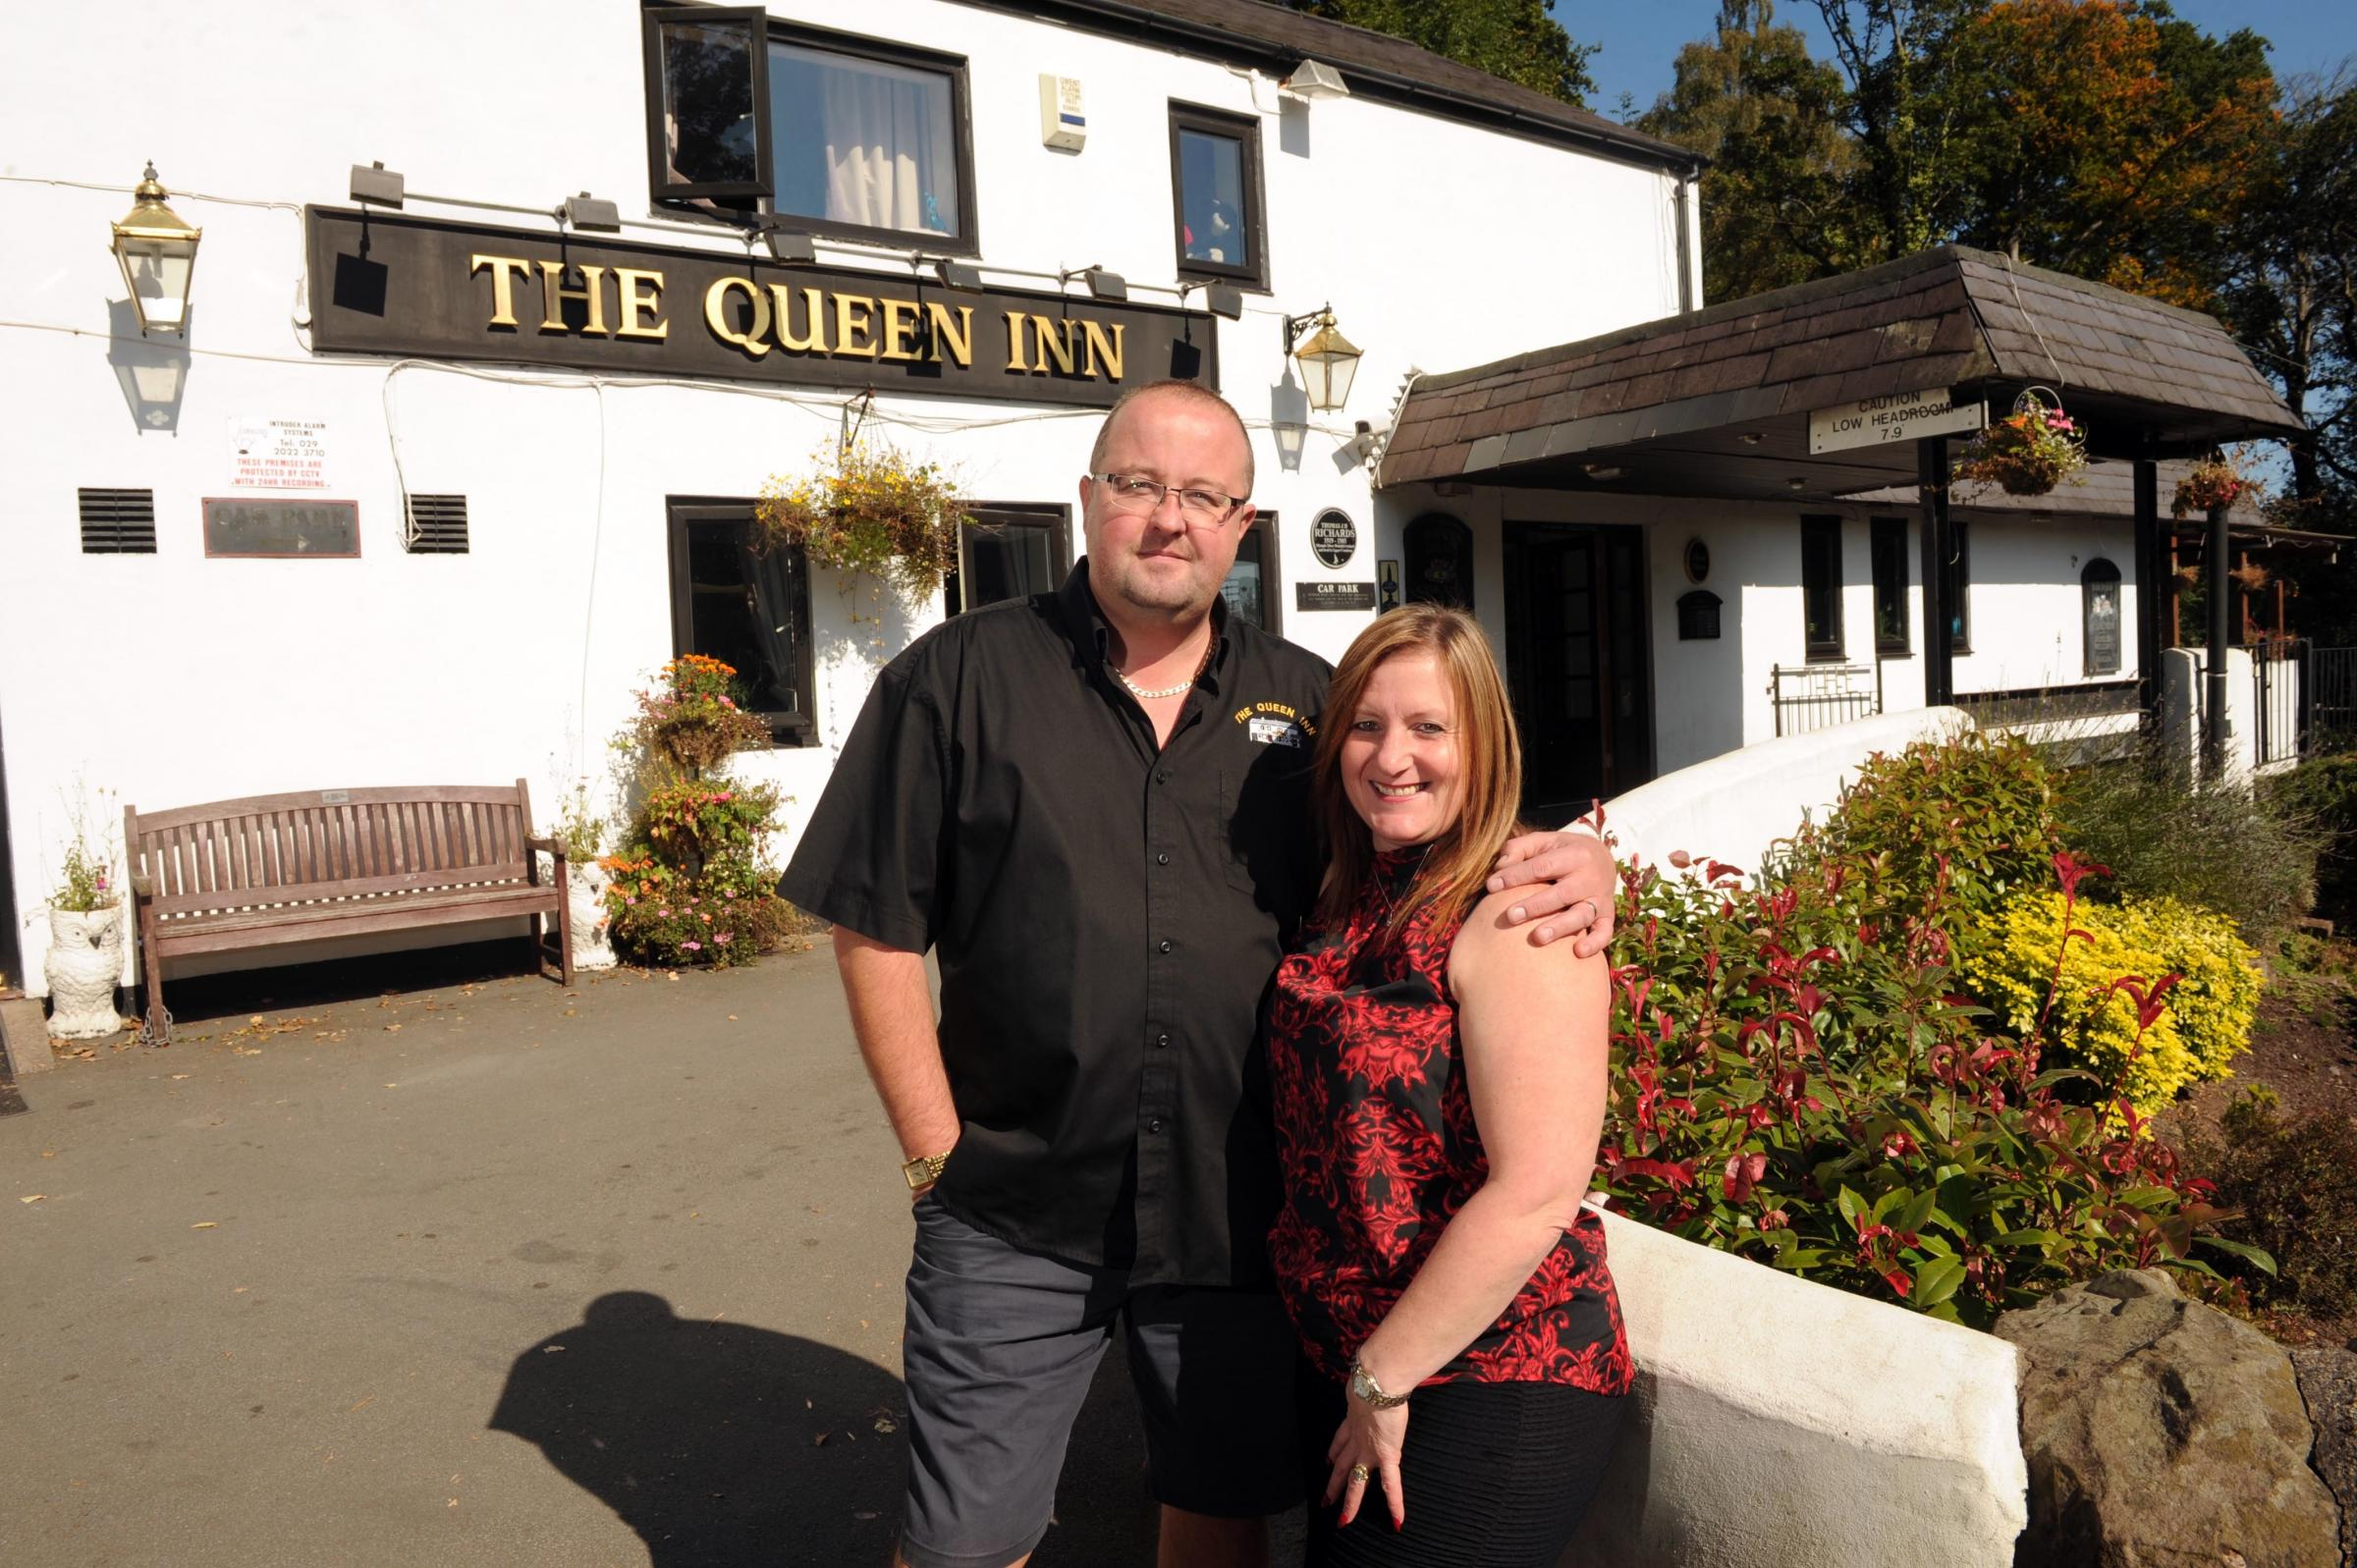 Gareth and Jane Edwards of the Queen Inn, Upper Cwmbran.